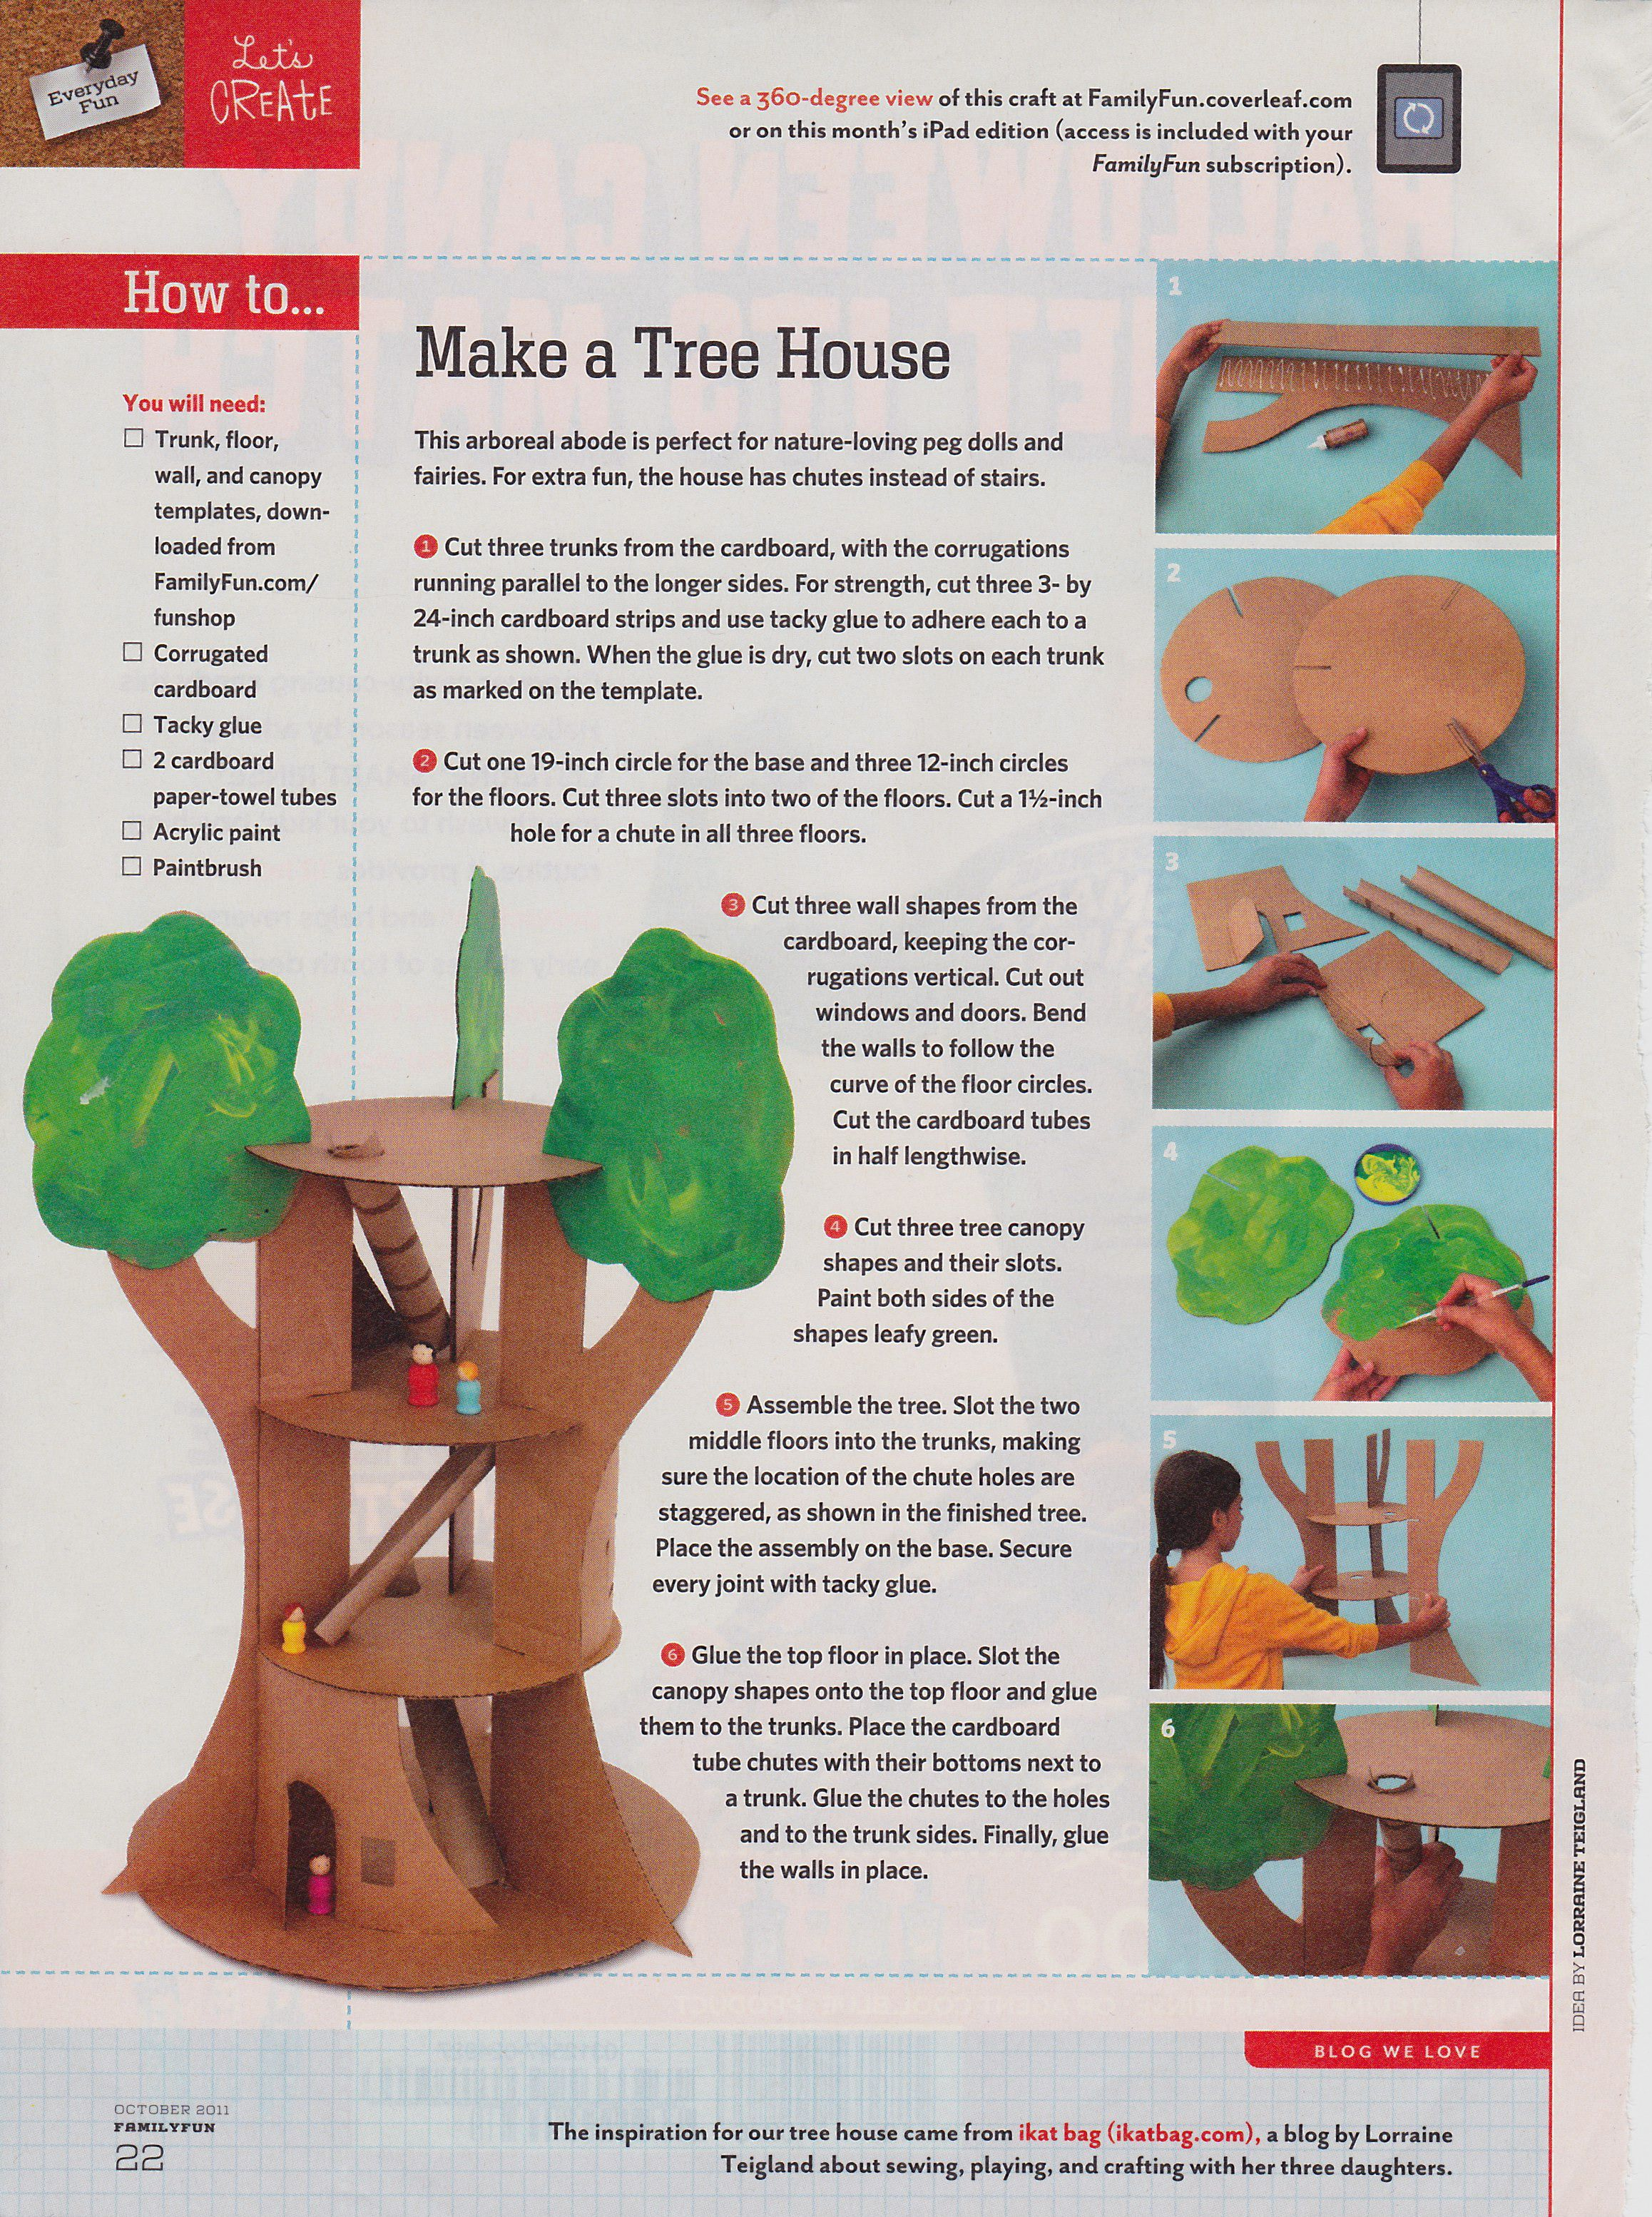 Tree House Craft From Family Fun Magazine October 2011 Crafts